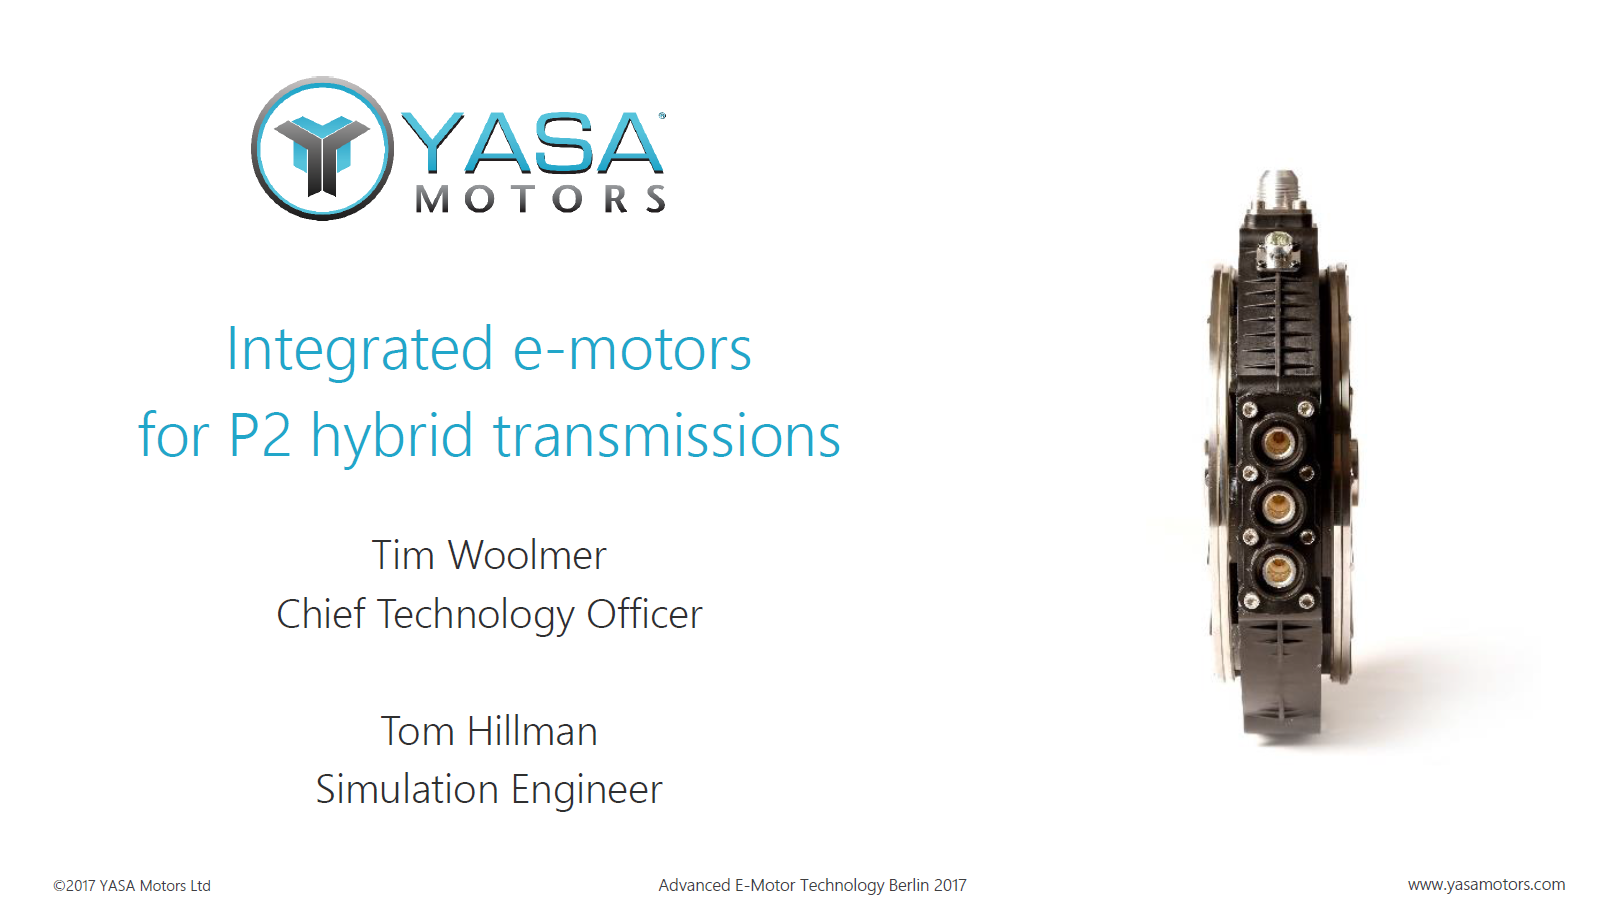 Presentation on innovative e-motor concepts & solutions